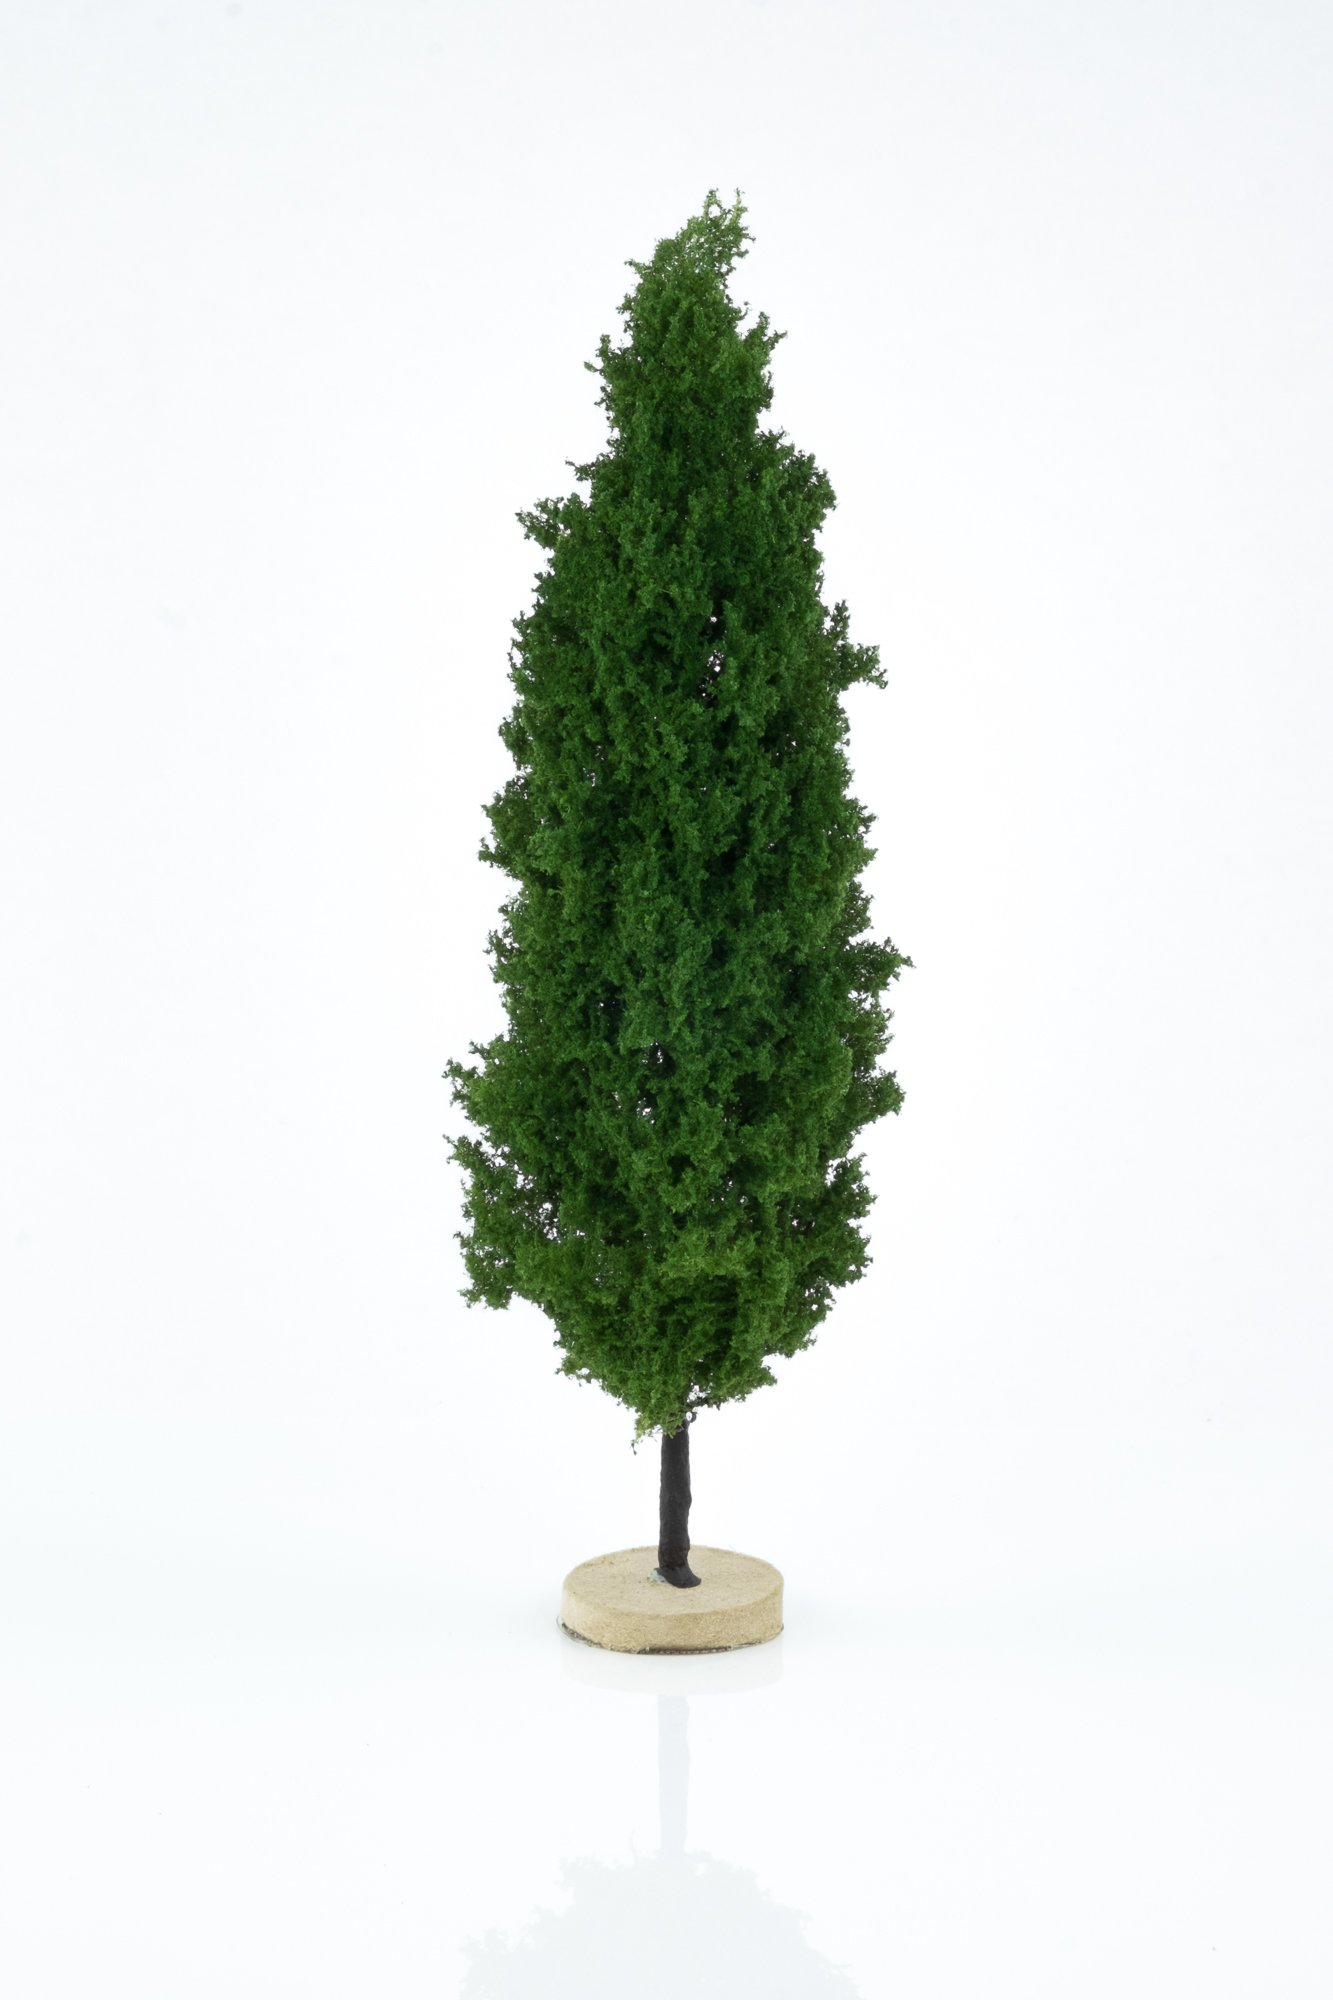 Hand-made, green, poplar tree model. Size between 18 and 20 cm. Made from high quality model supplies by Primo Models.